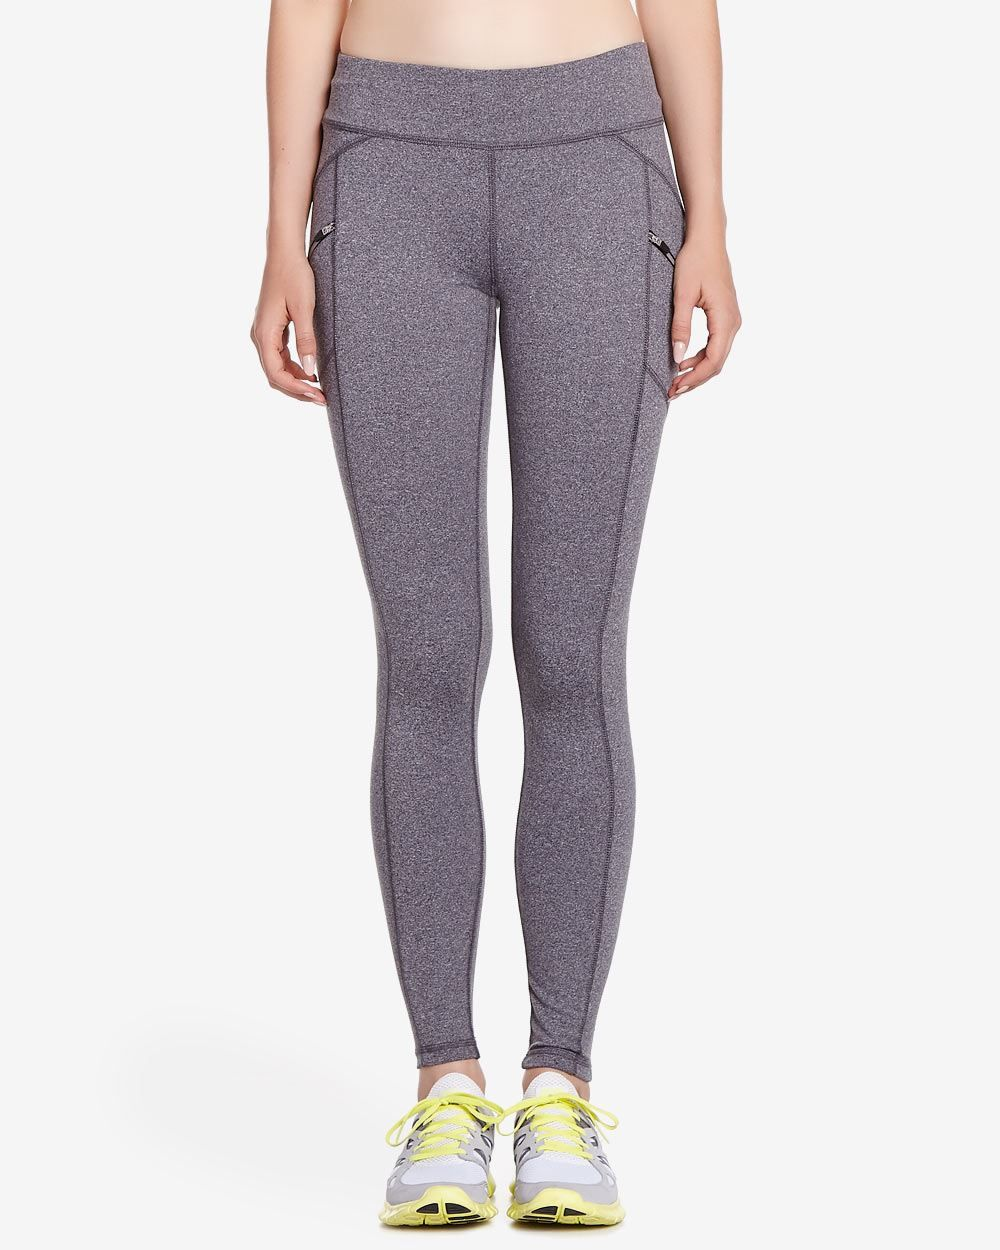 65e1ef78befe92 Slip into this Hyba Smooth Mover Legging and experience comfort like never  before. Featuring two side zip pockets for your on-the-go essentials and  super ...